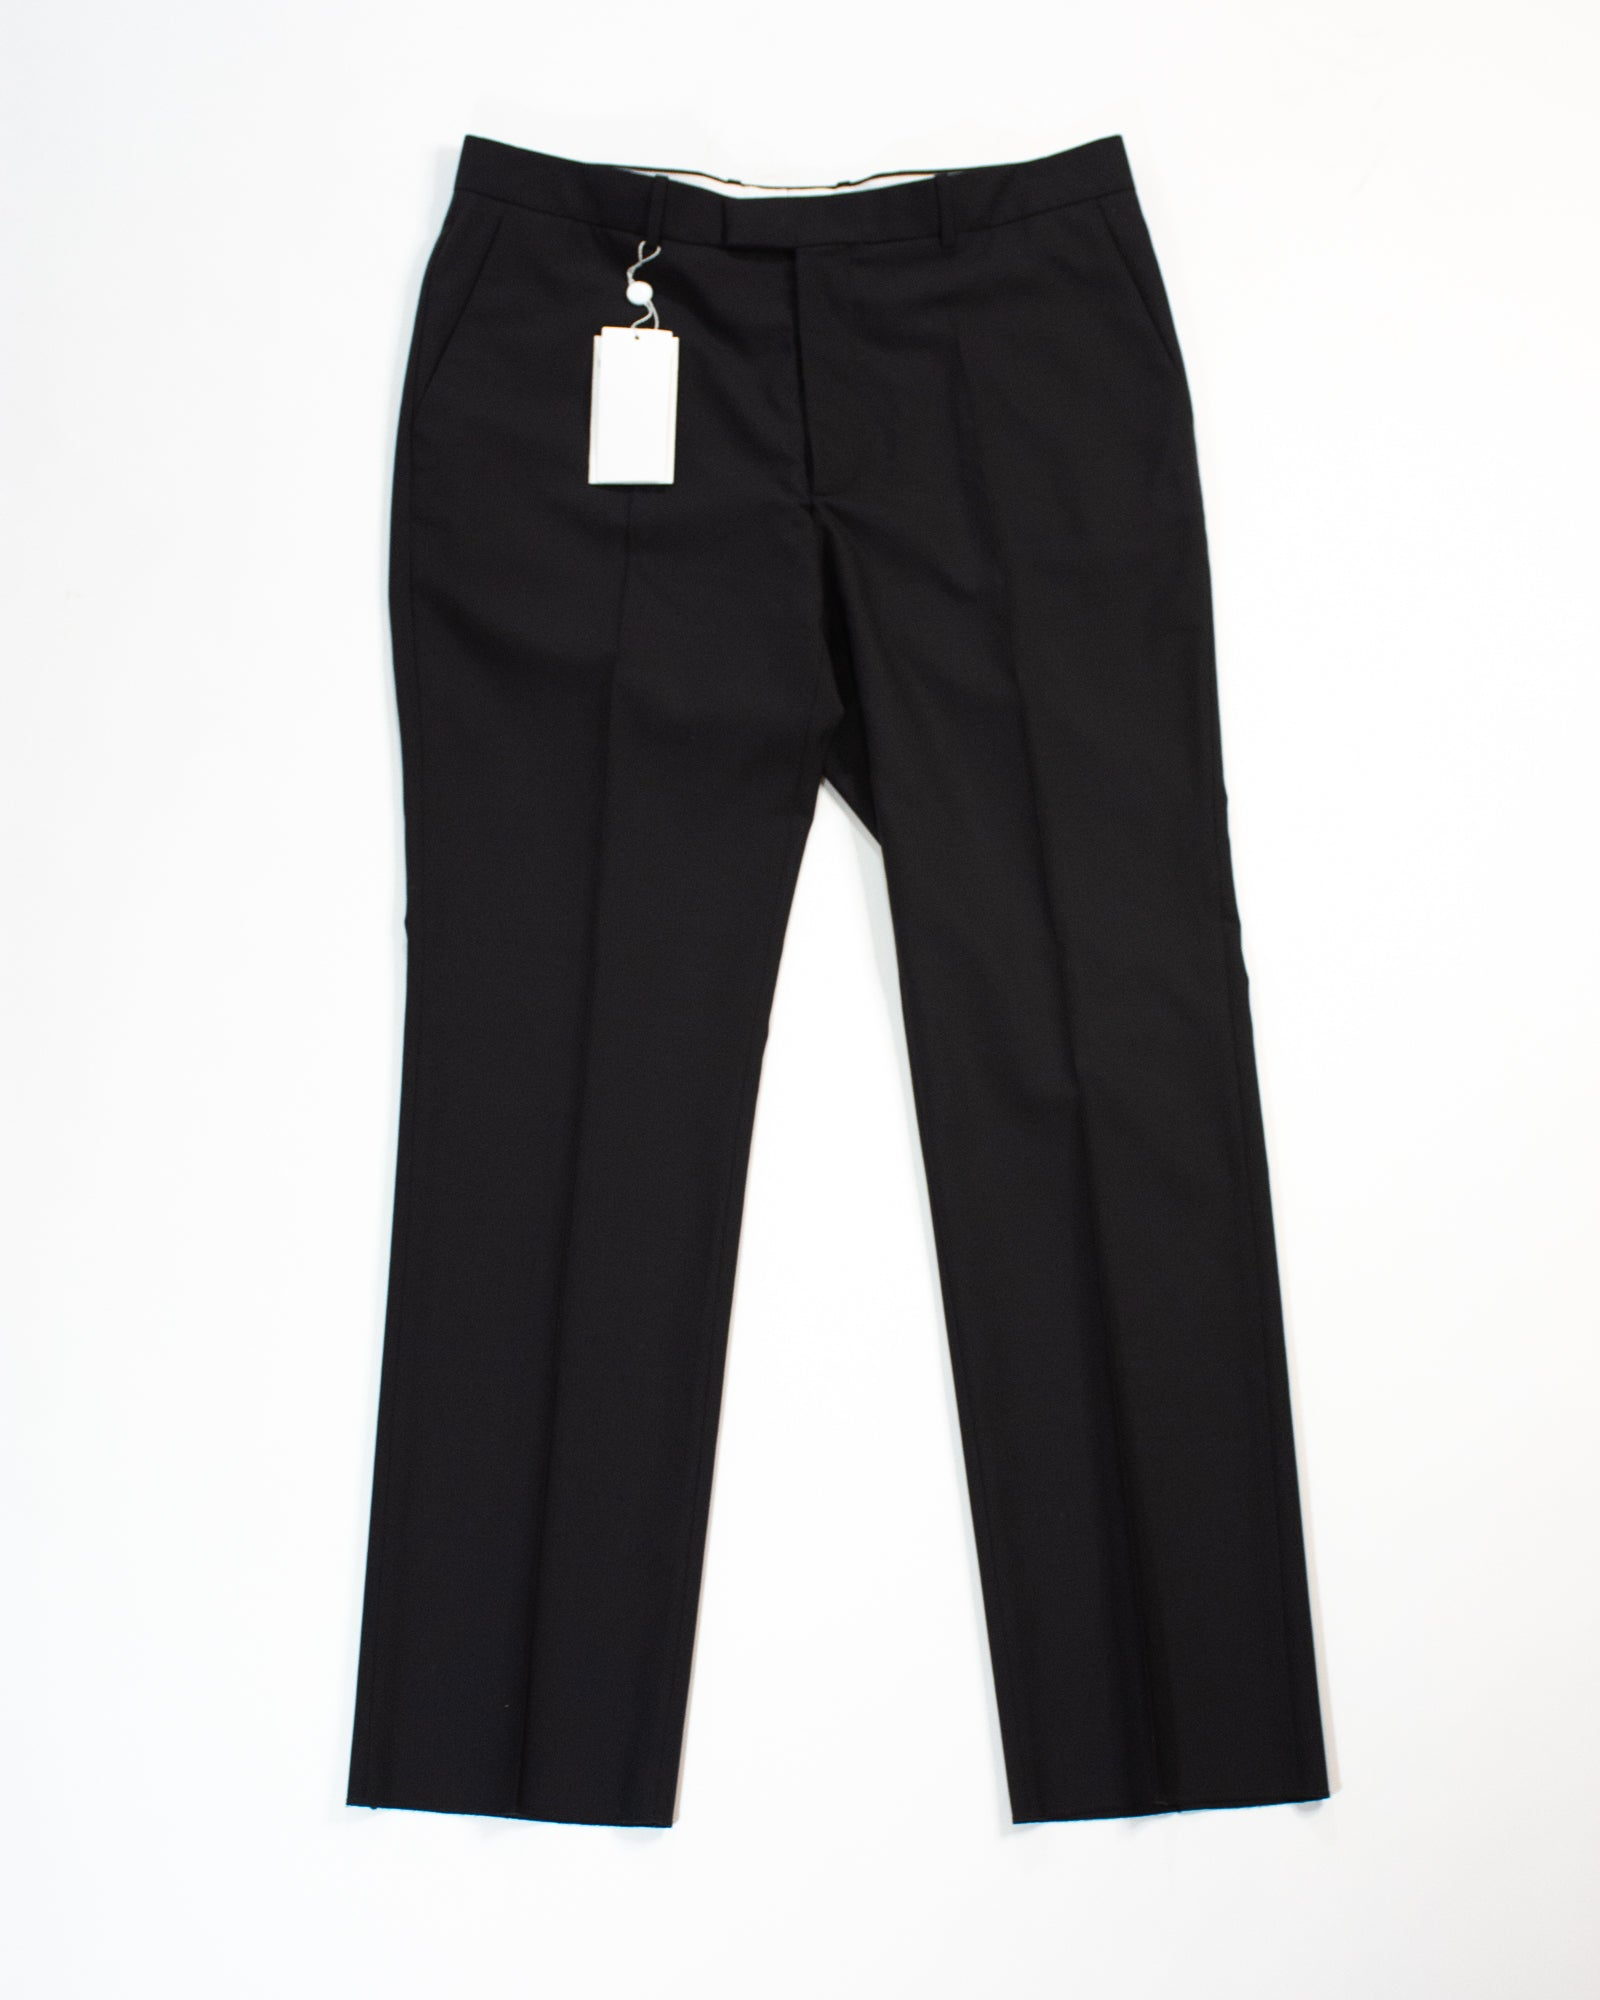 MAISON MARGIELA Tailored Trouser